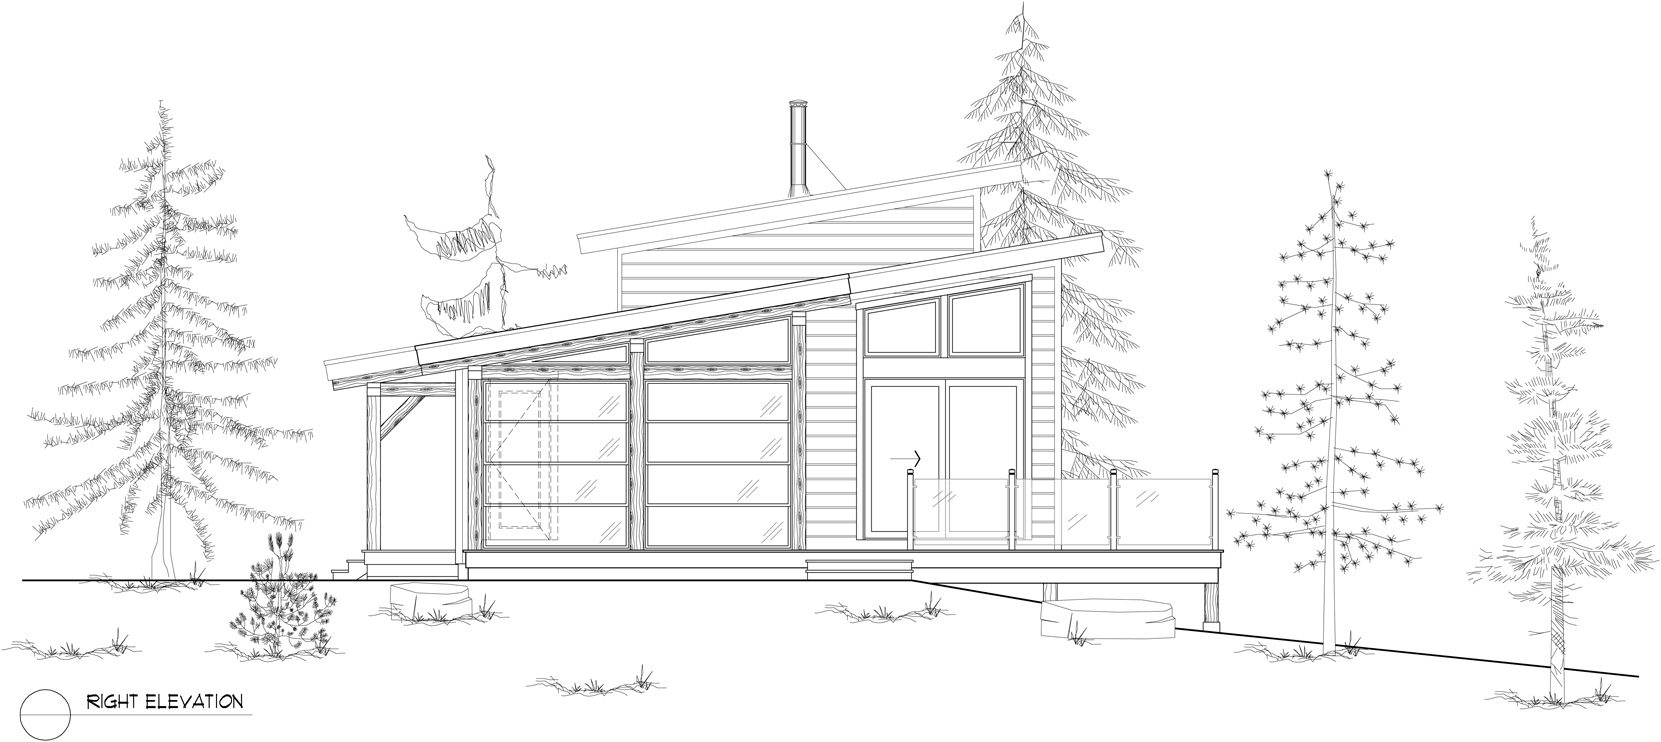 Normerica Timber Frames, House Plan, The Kershaw 3808, Right Elevation